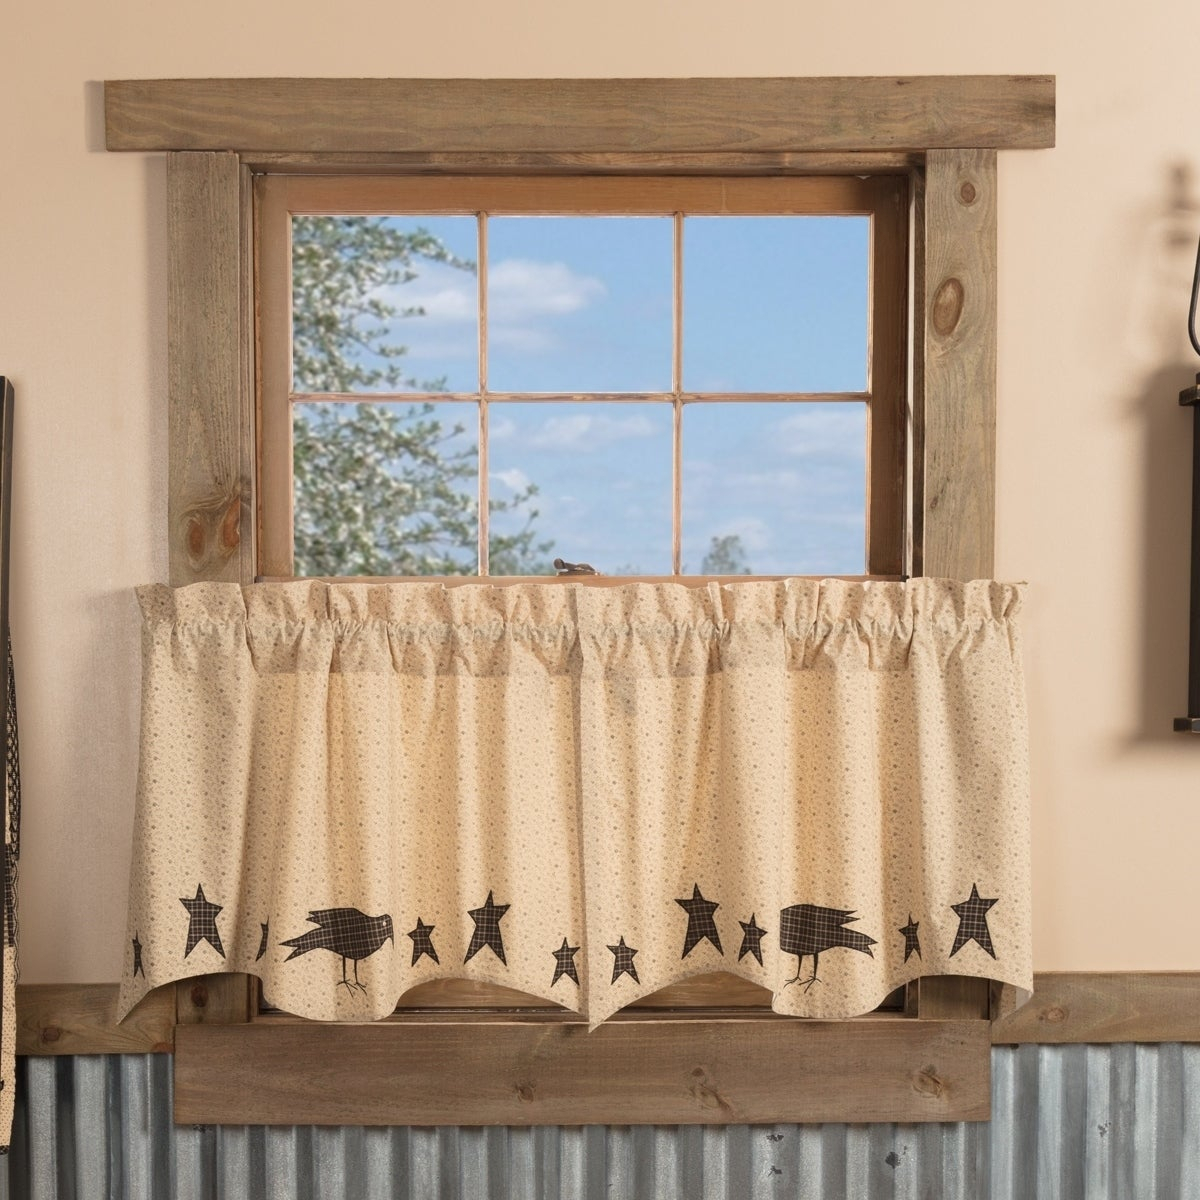 Tan Primitive Kitchen Curtains Vhc Kettle Grove Crow And Star Tier Pair Rod Pocket Cotton Star Appliqued Throughout Primitive Kitchen Curtains (Gallery 12 of 20)